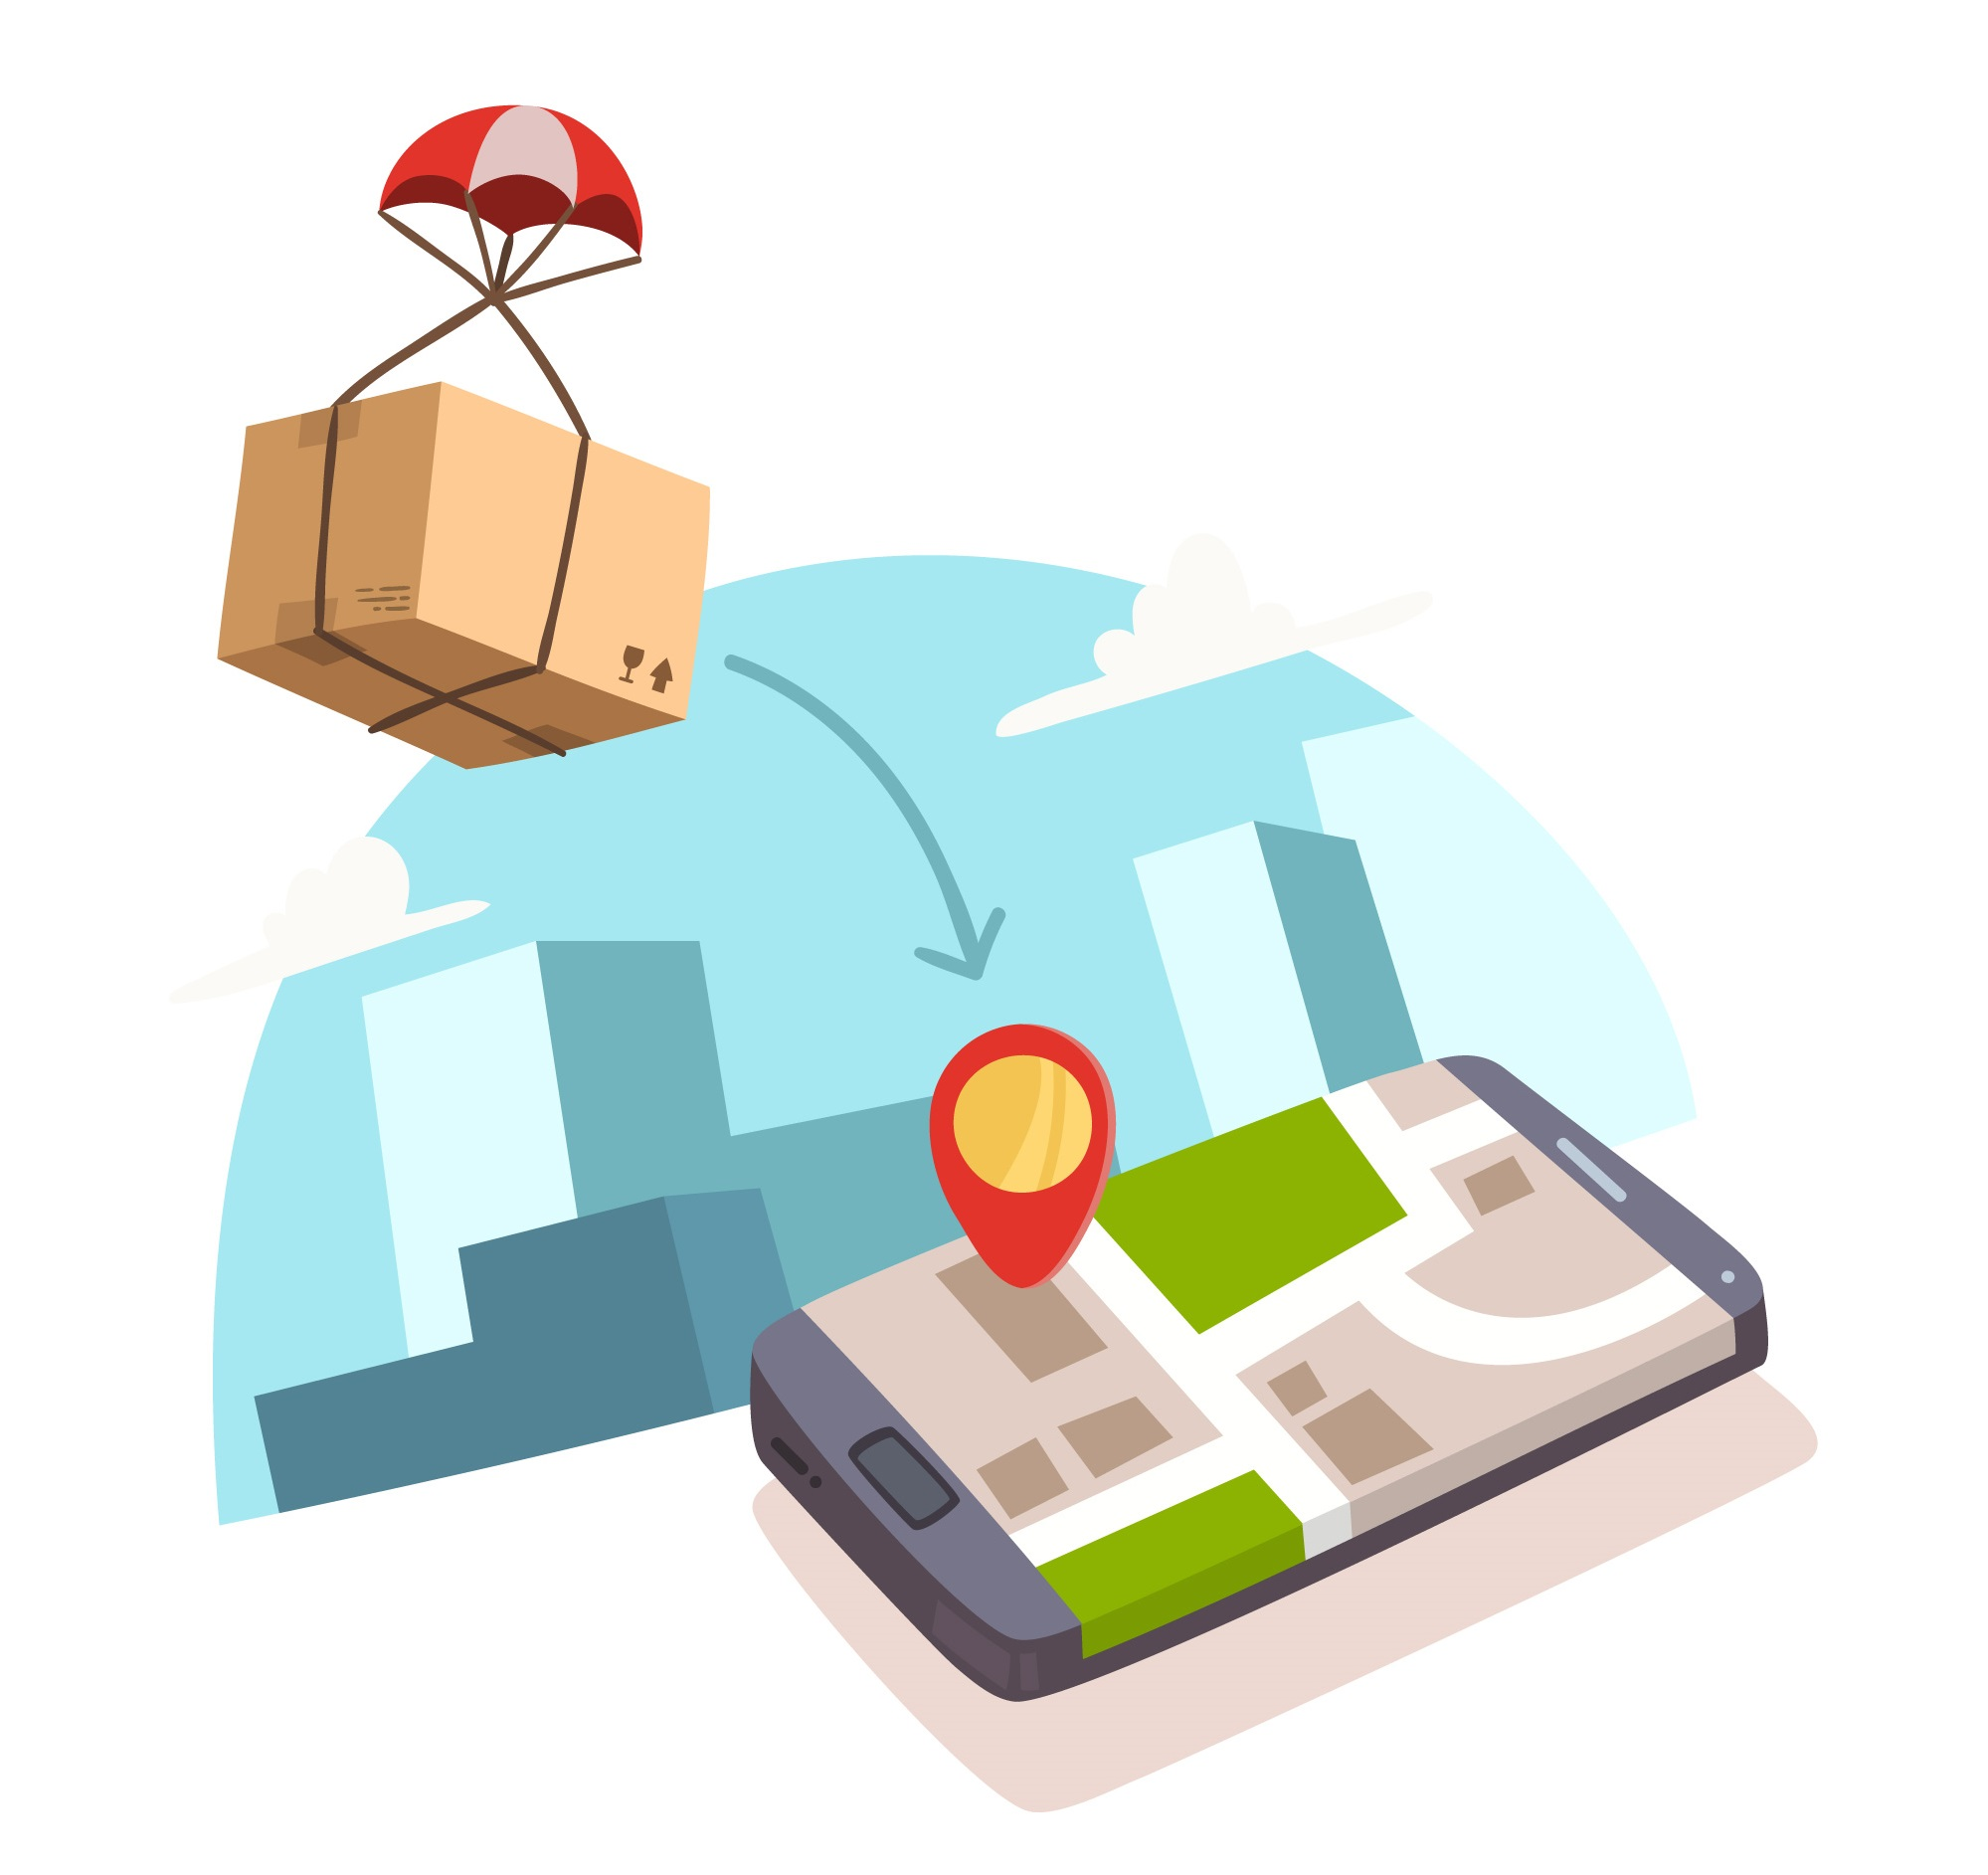 EDIT BILLING AND SHIPPING DETAILS